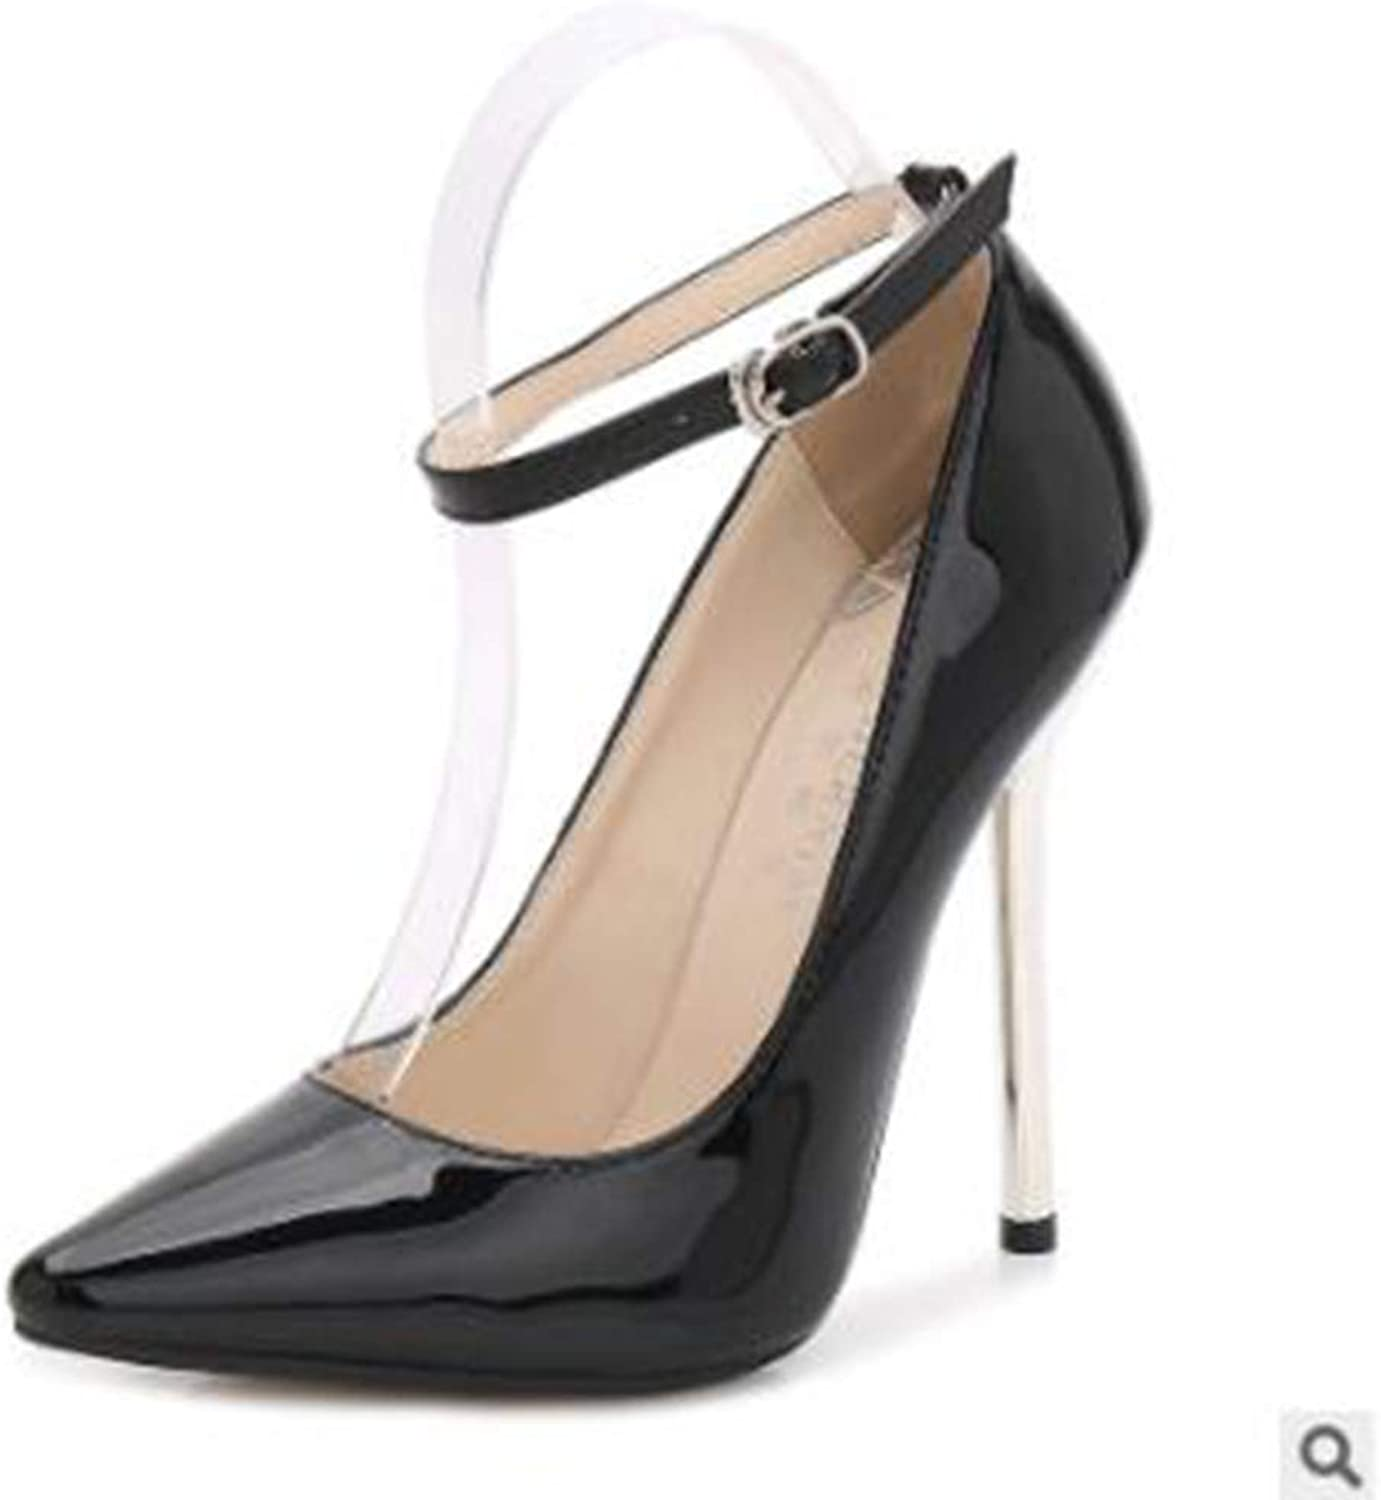 Pophight New 13CM Metal Heel Model and Show Sexy Ankle Strap Pump Large Size High-Heeled shoes Simple Fashion Women's shoes